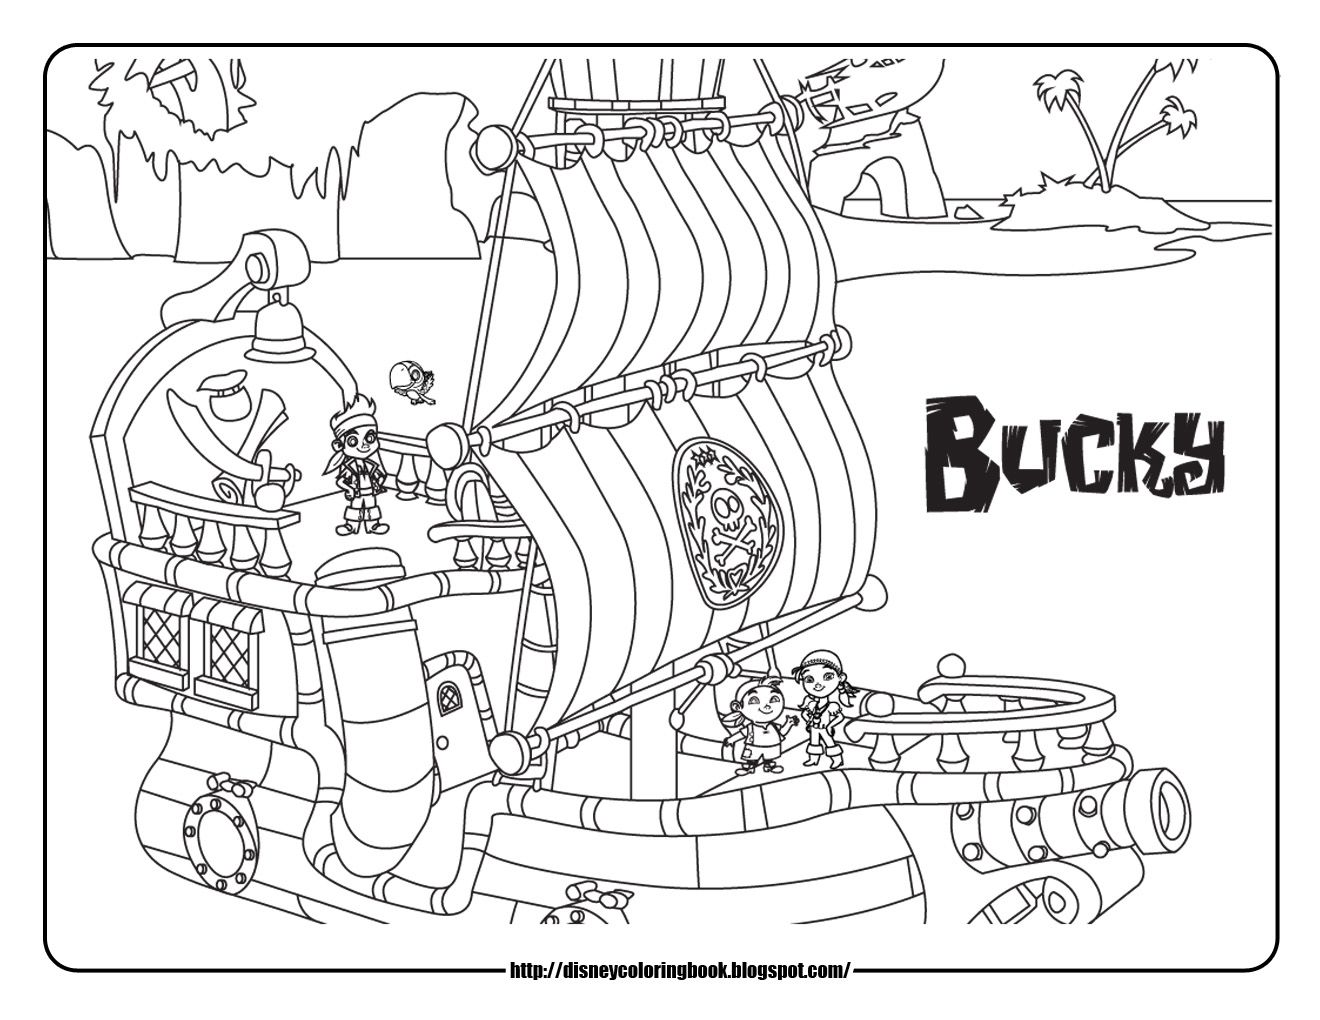 Tsum Tsum Fiesta De Cumpleaños Para Colorear Páginas Libro De: Jake And Neverland Pirates Coloring Pages